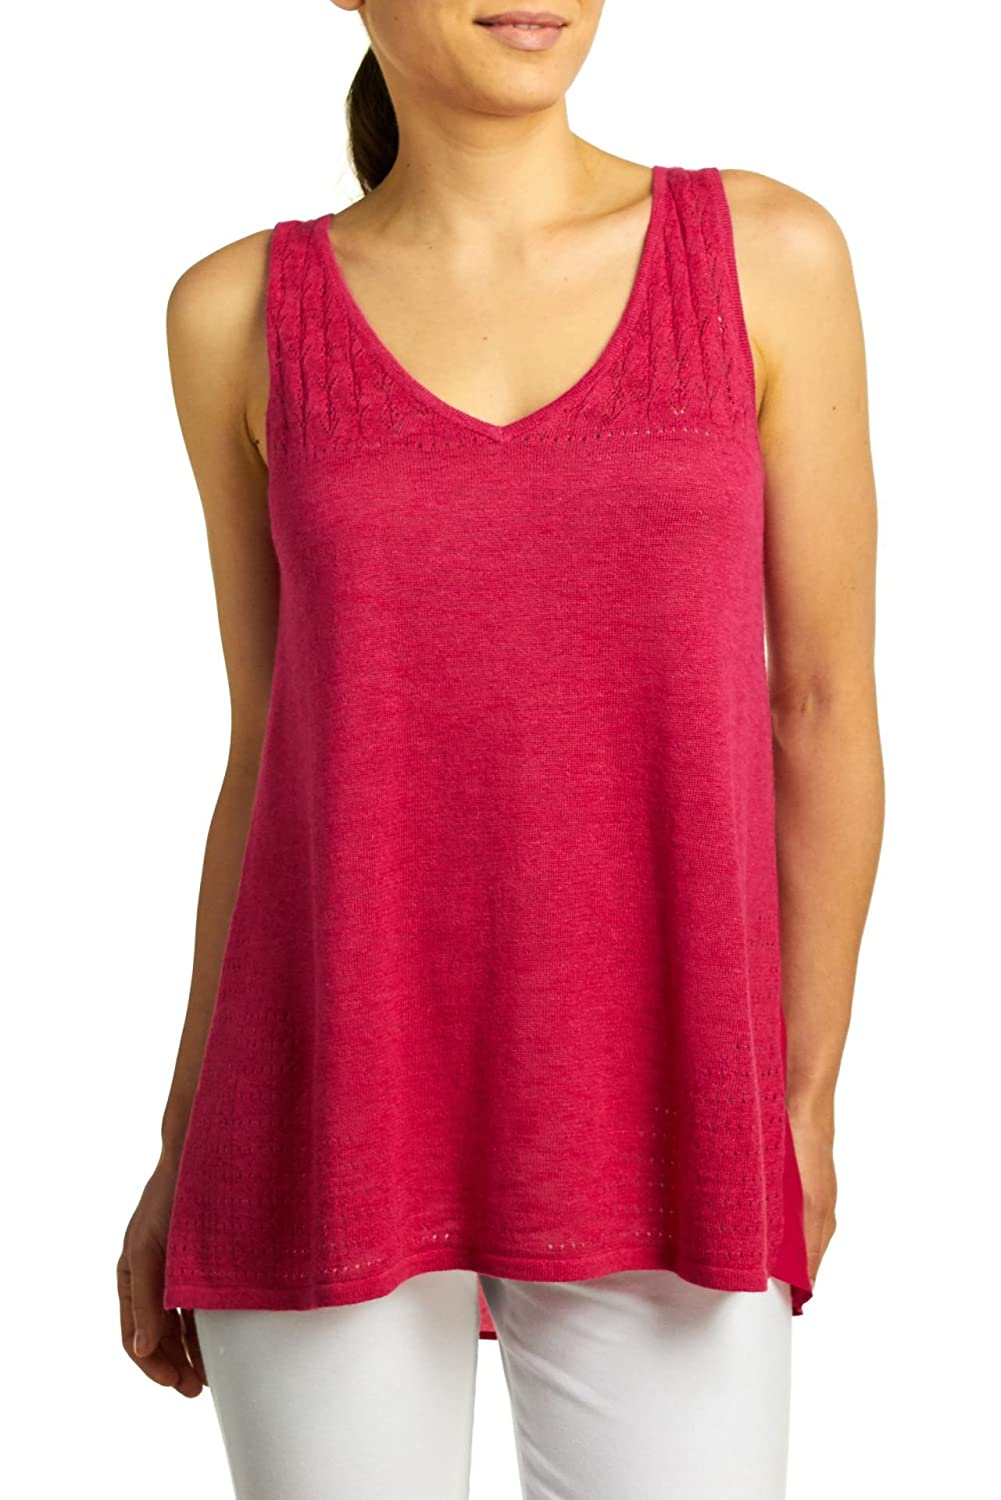 fb6ae906d4 August Silk Women's Sleeveless Lace Pointelle Front Sweater Tank Top ...